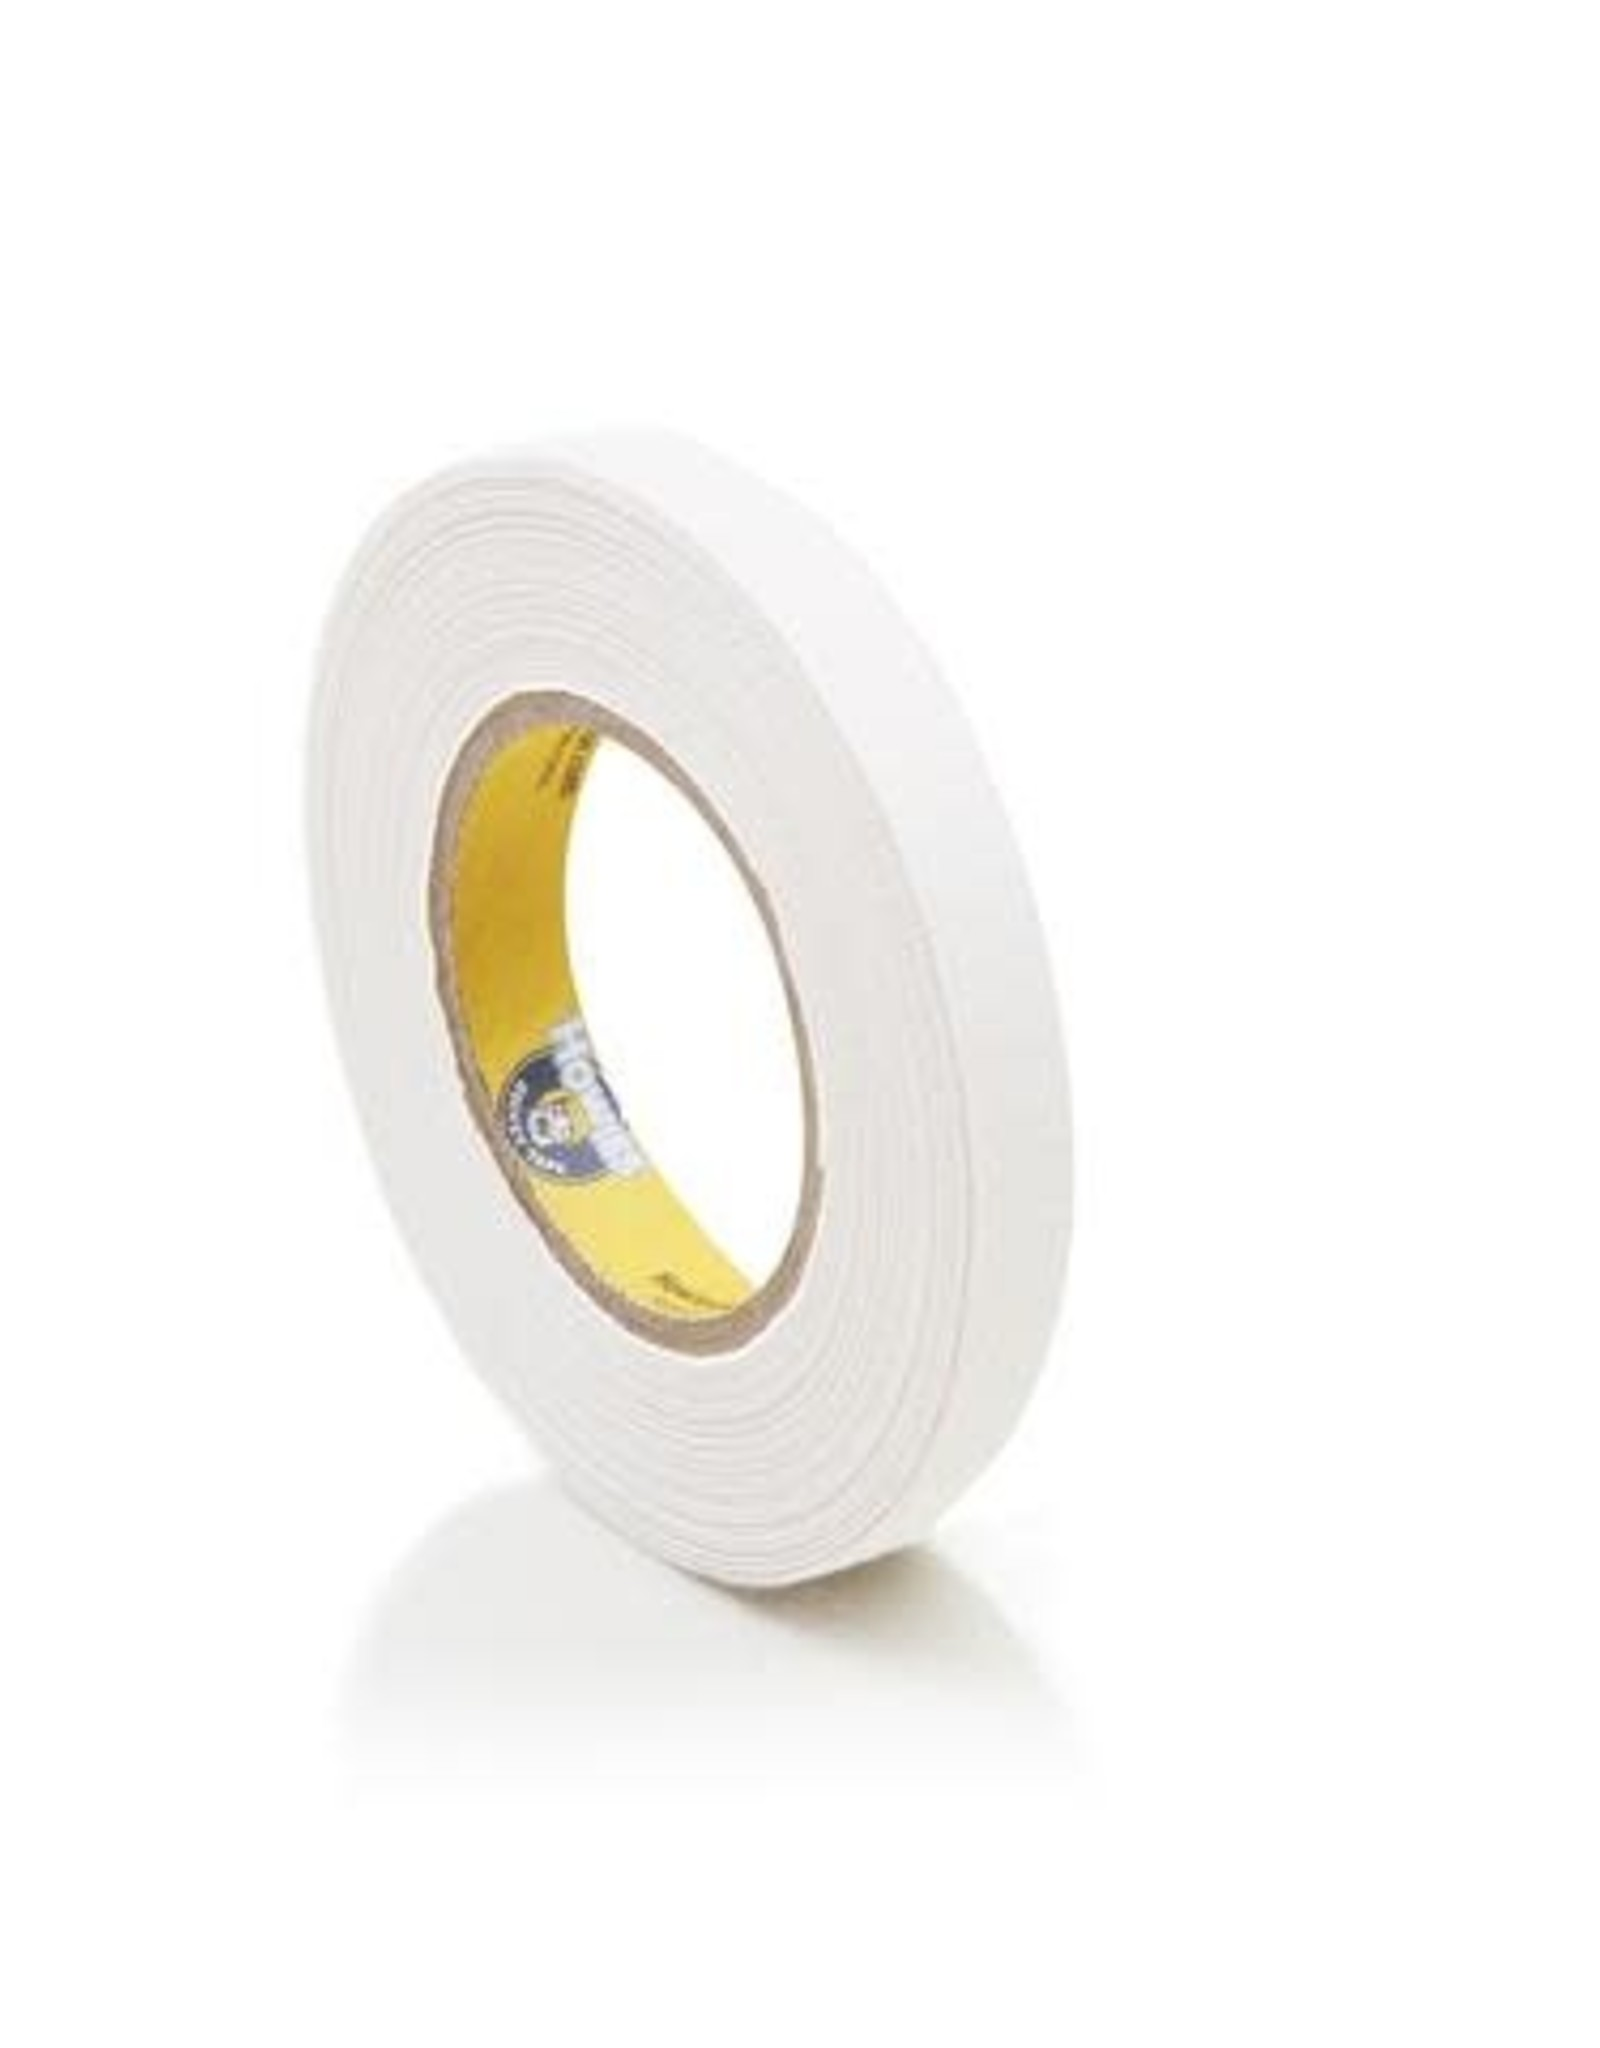 Howies Howies Knob Tape (WHITE)